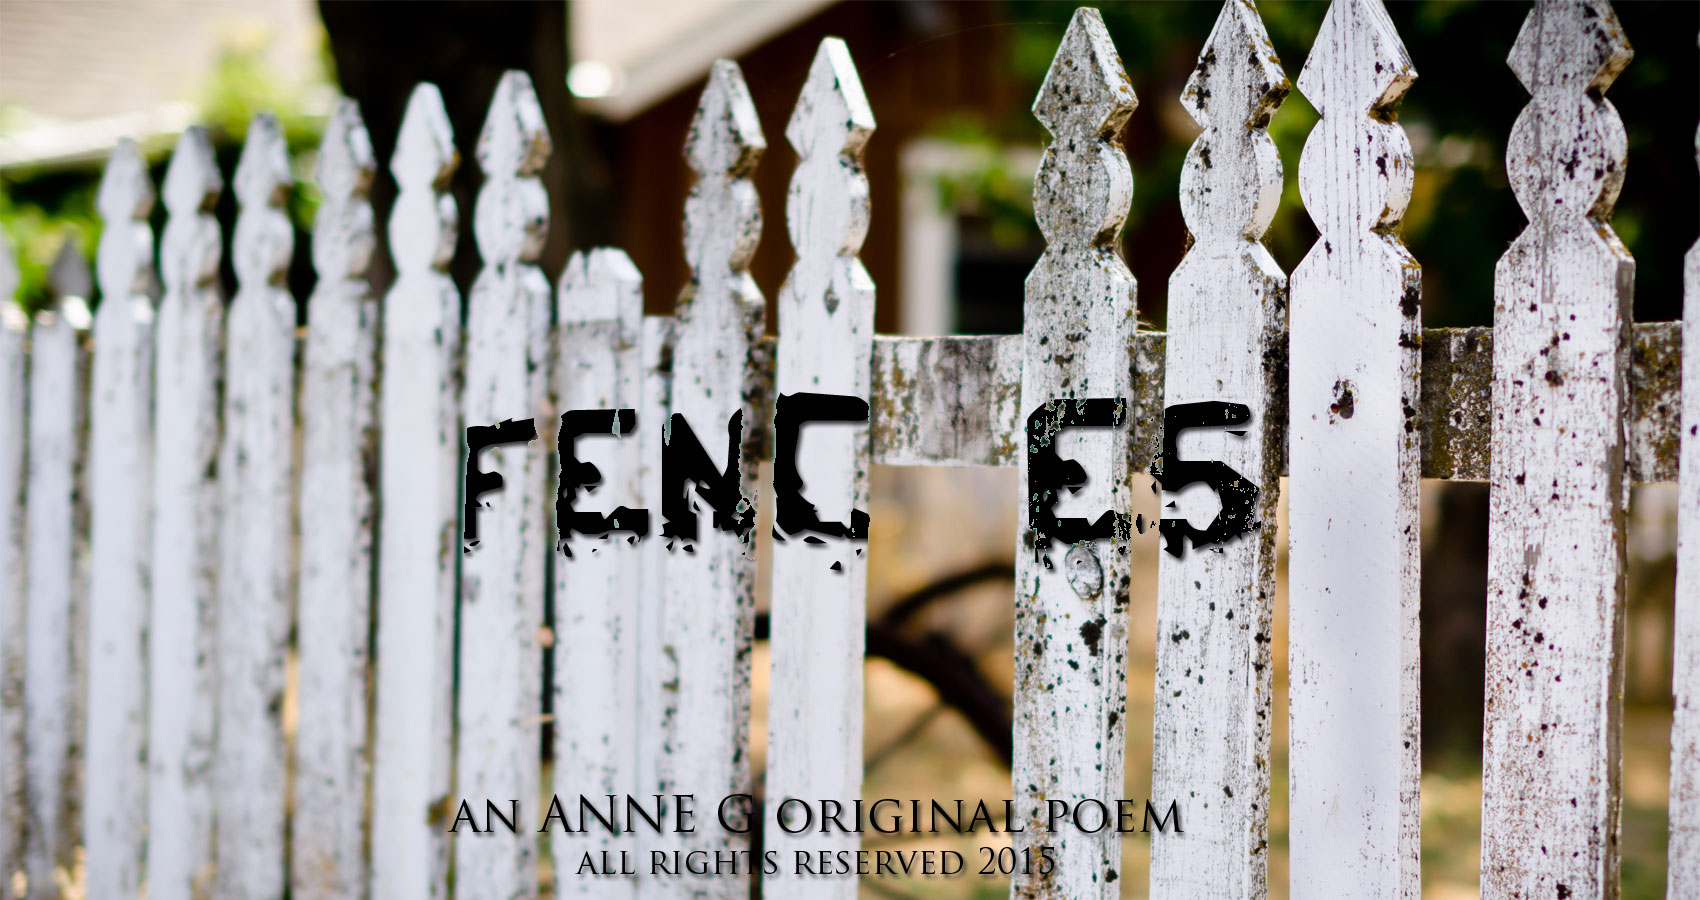 Fences An Anne G Original Poem at spillwords.com political politics